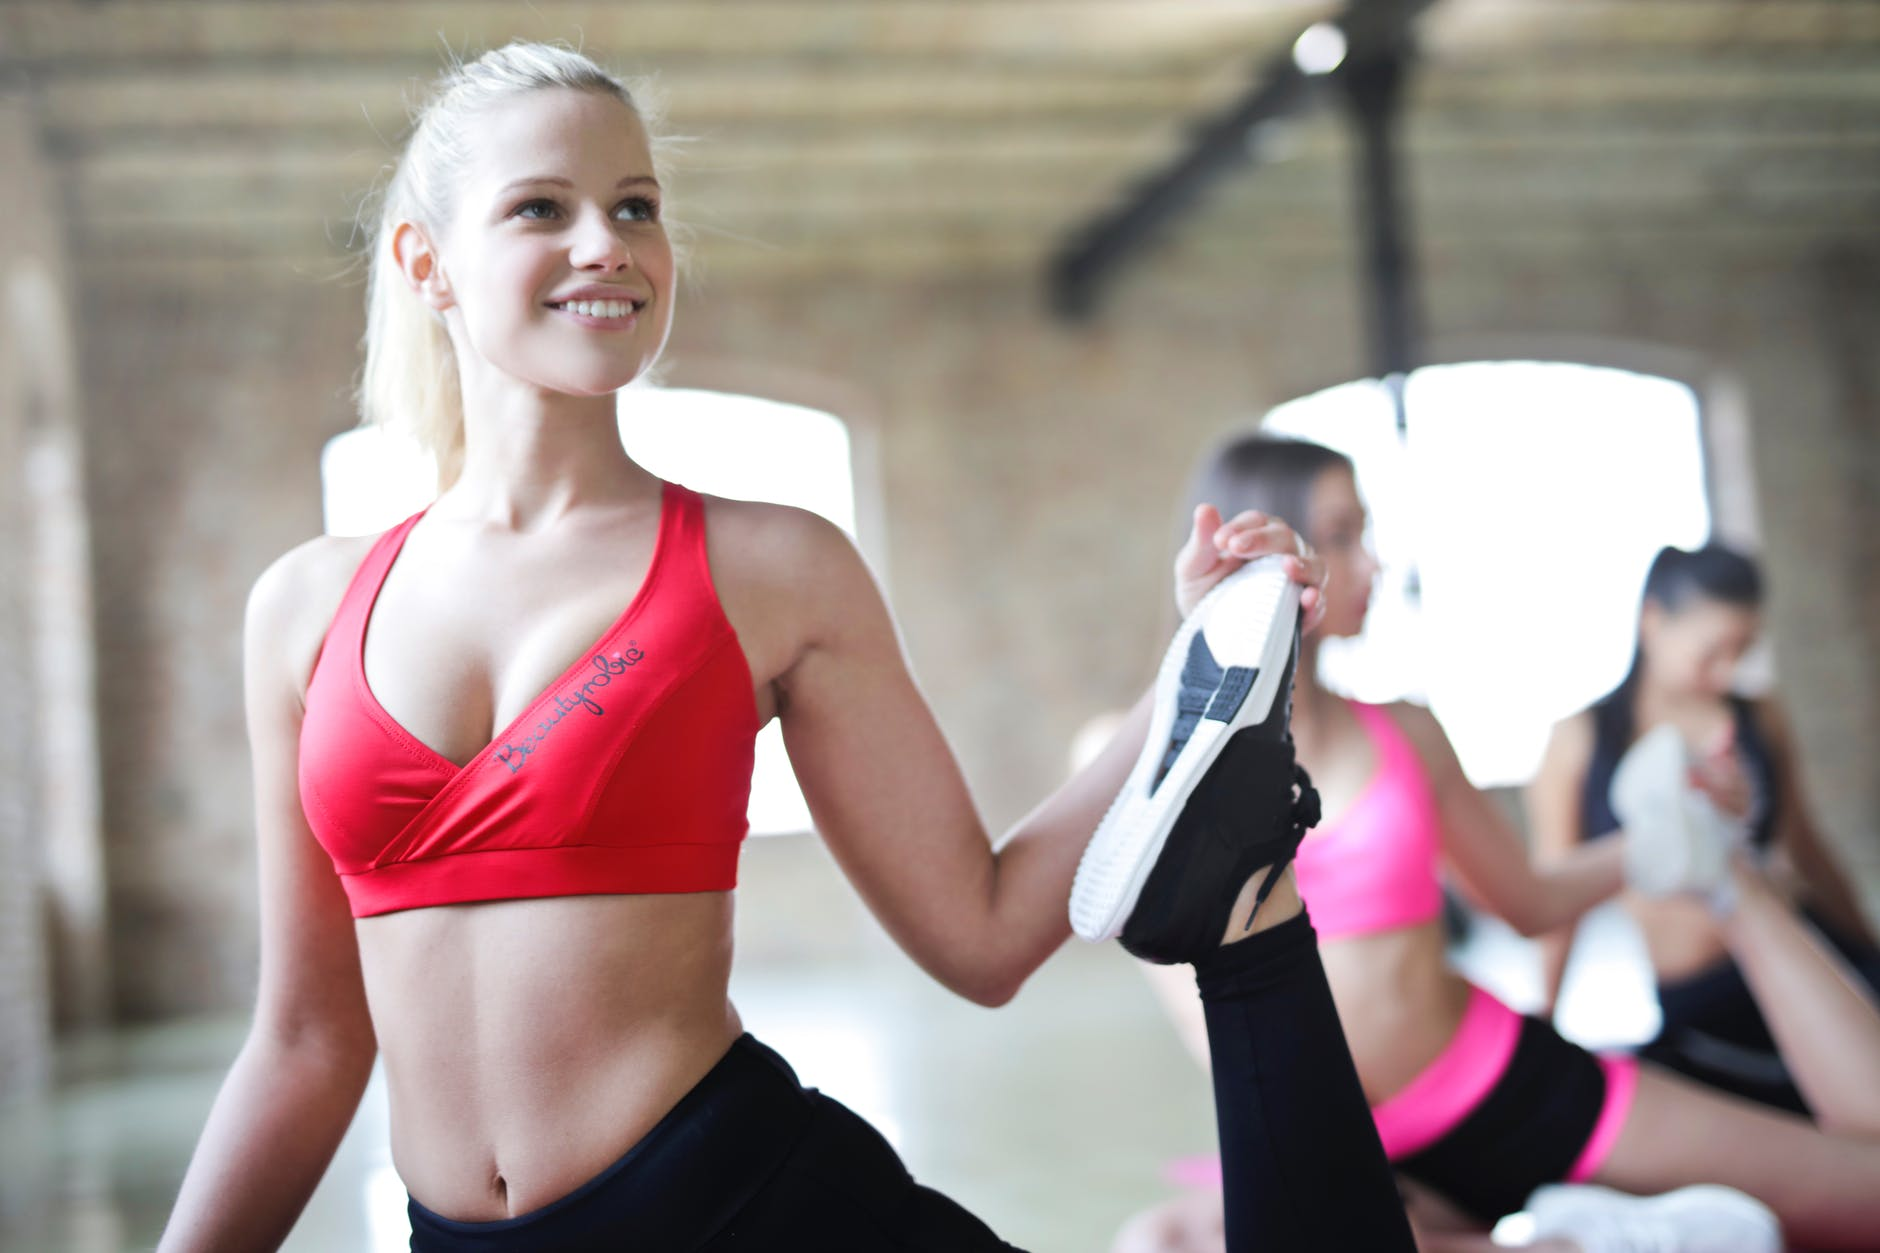 weight loss exercise woman happy